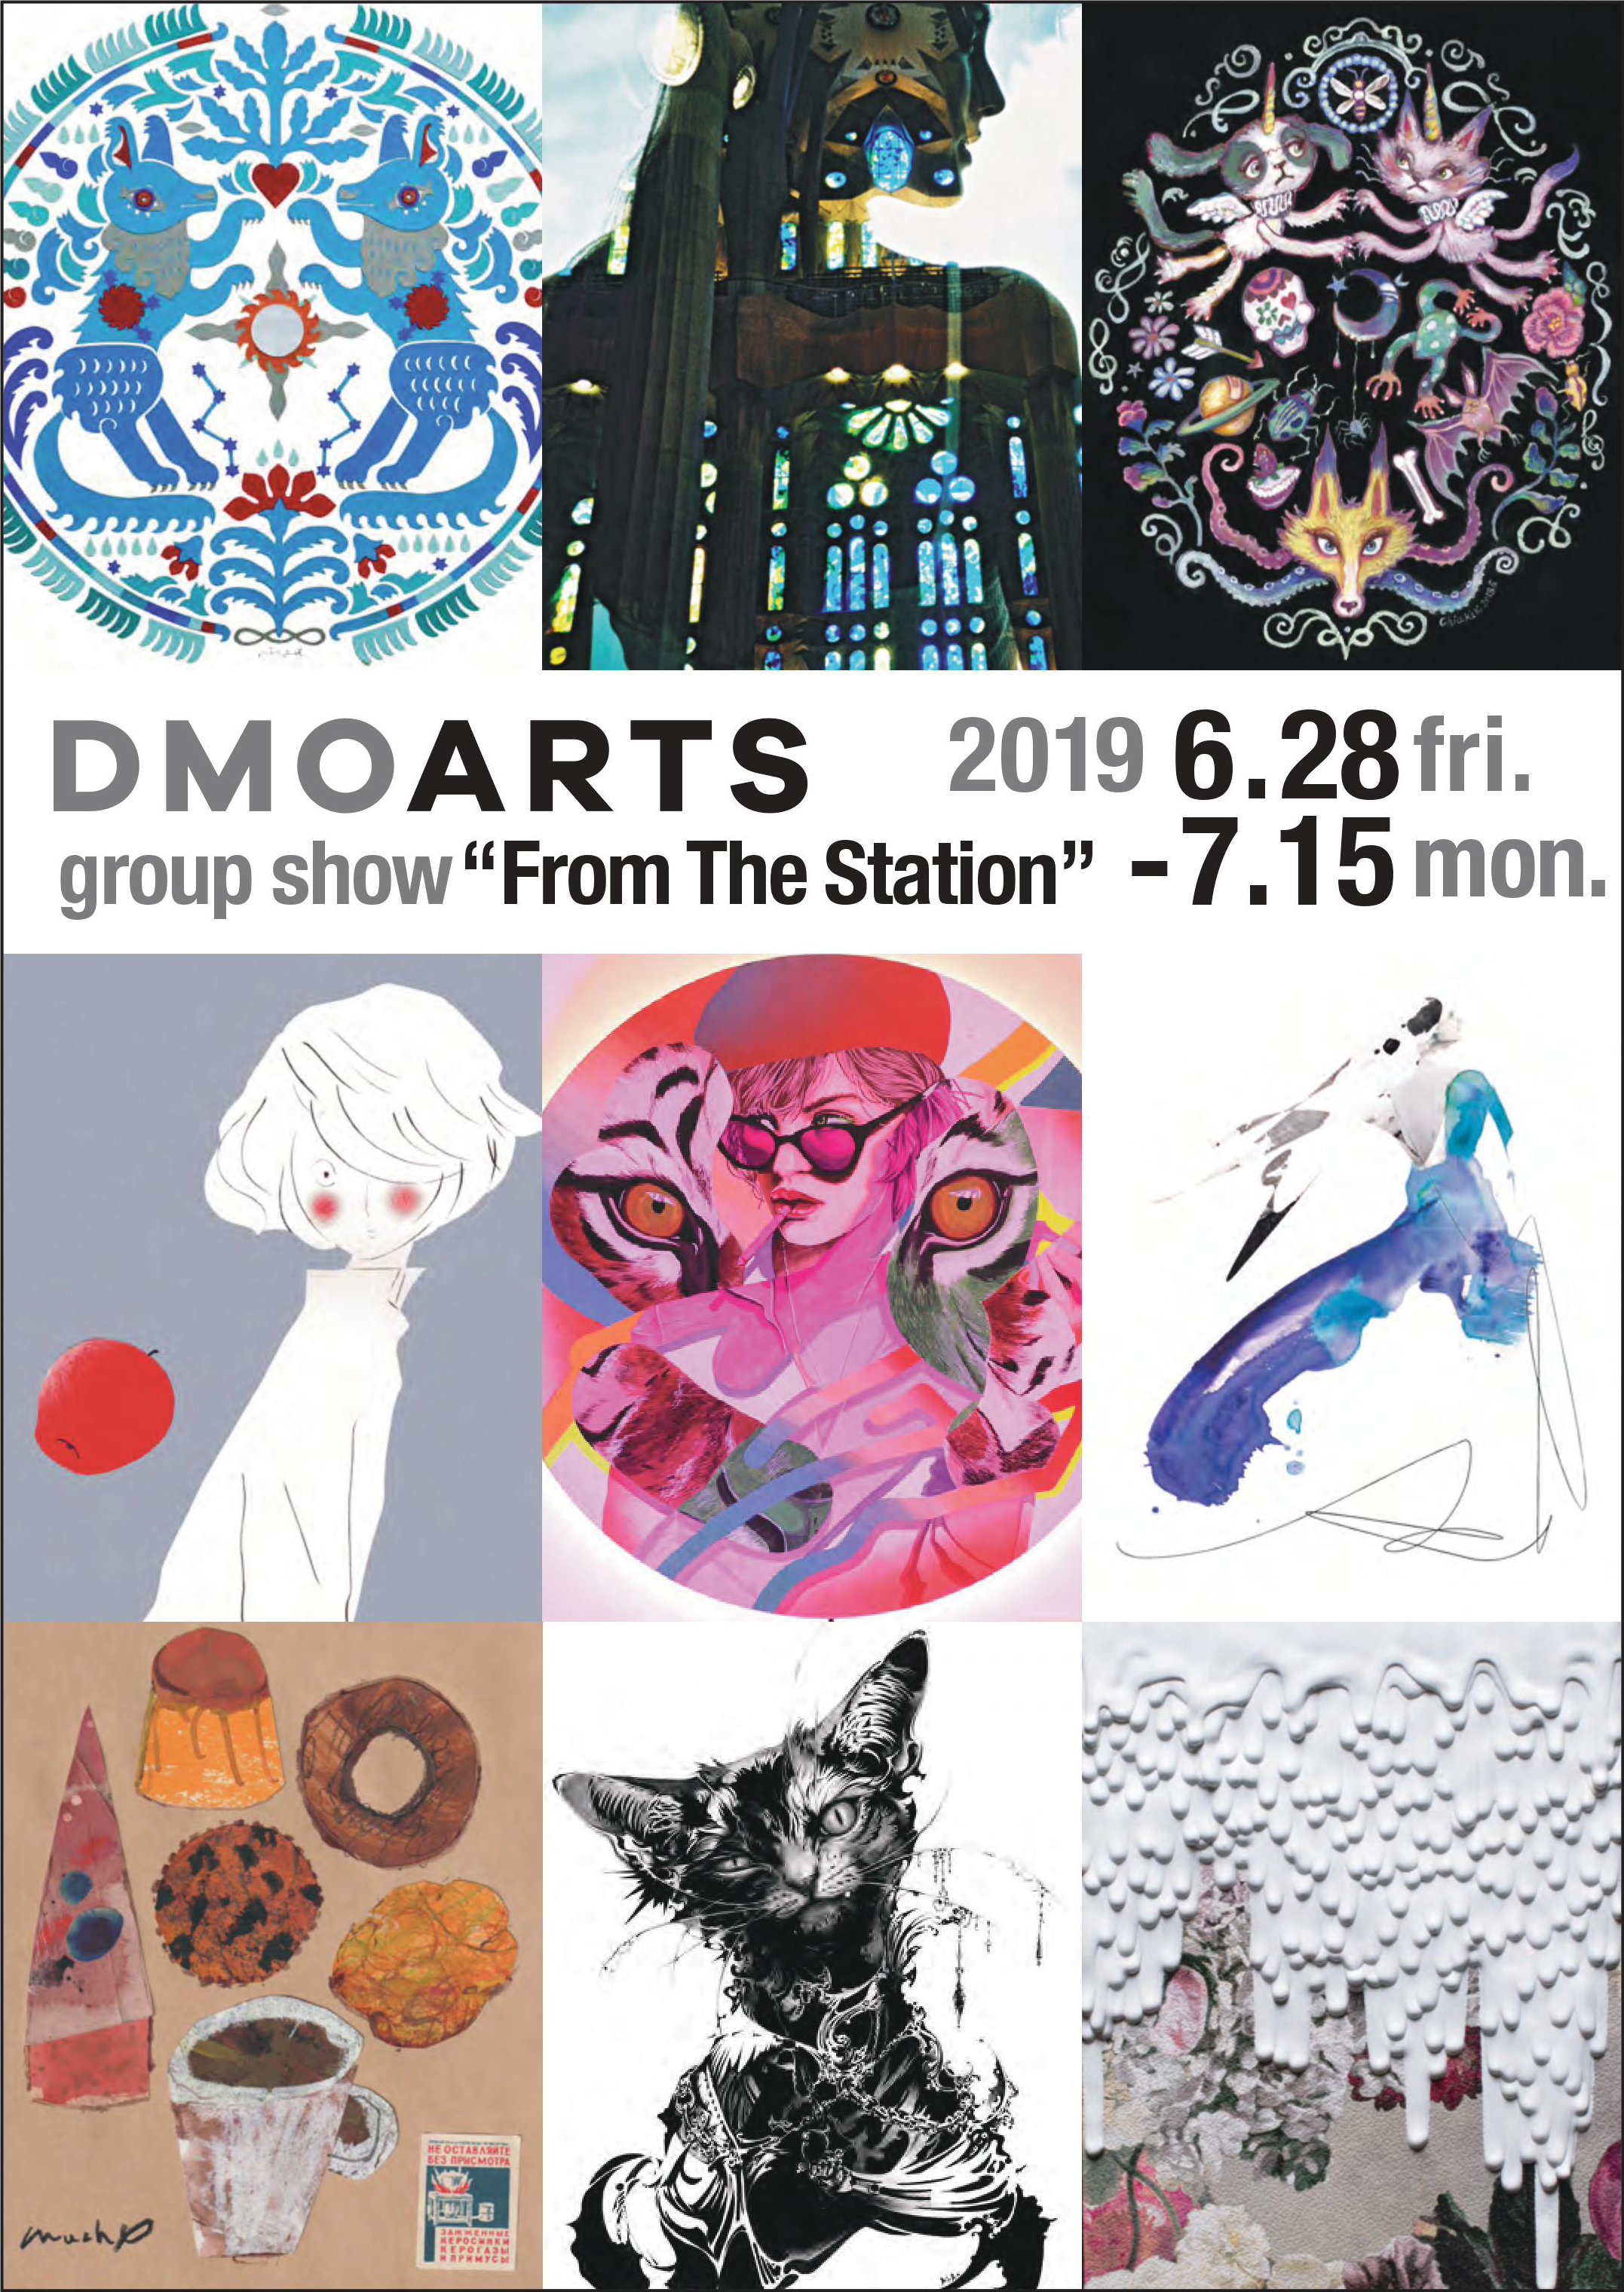 DMOARTS group show 「From The Station」/